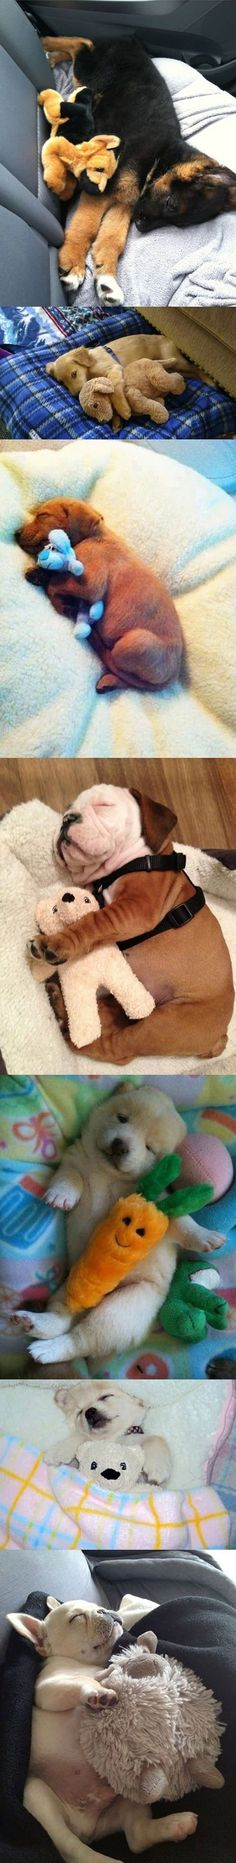 Puppies with their stuffed animals